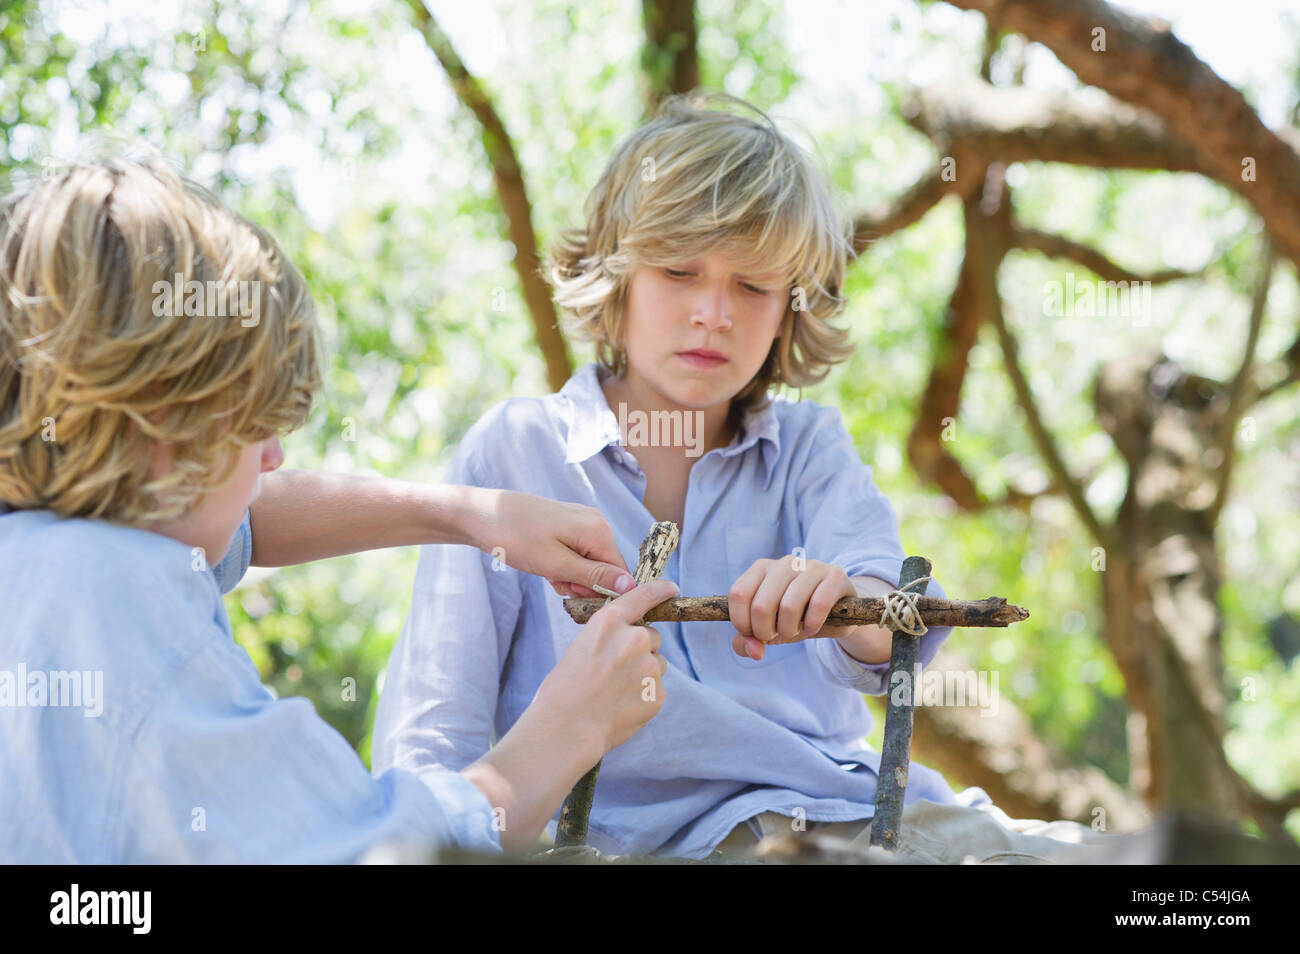 Children making frame of driftwood outdoors - Stock Image